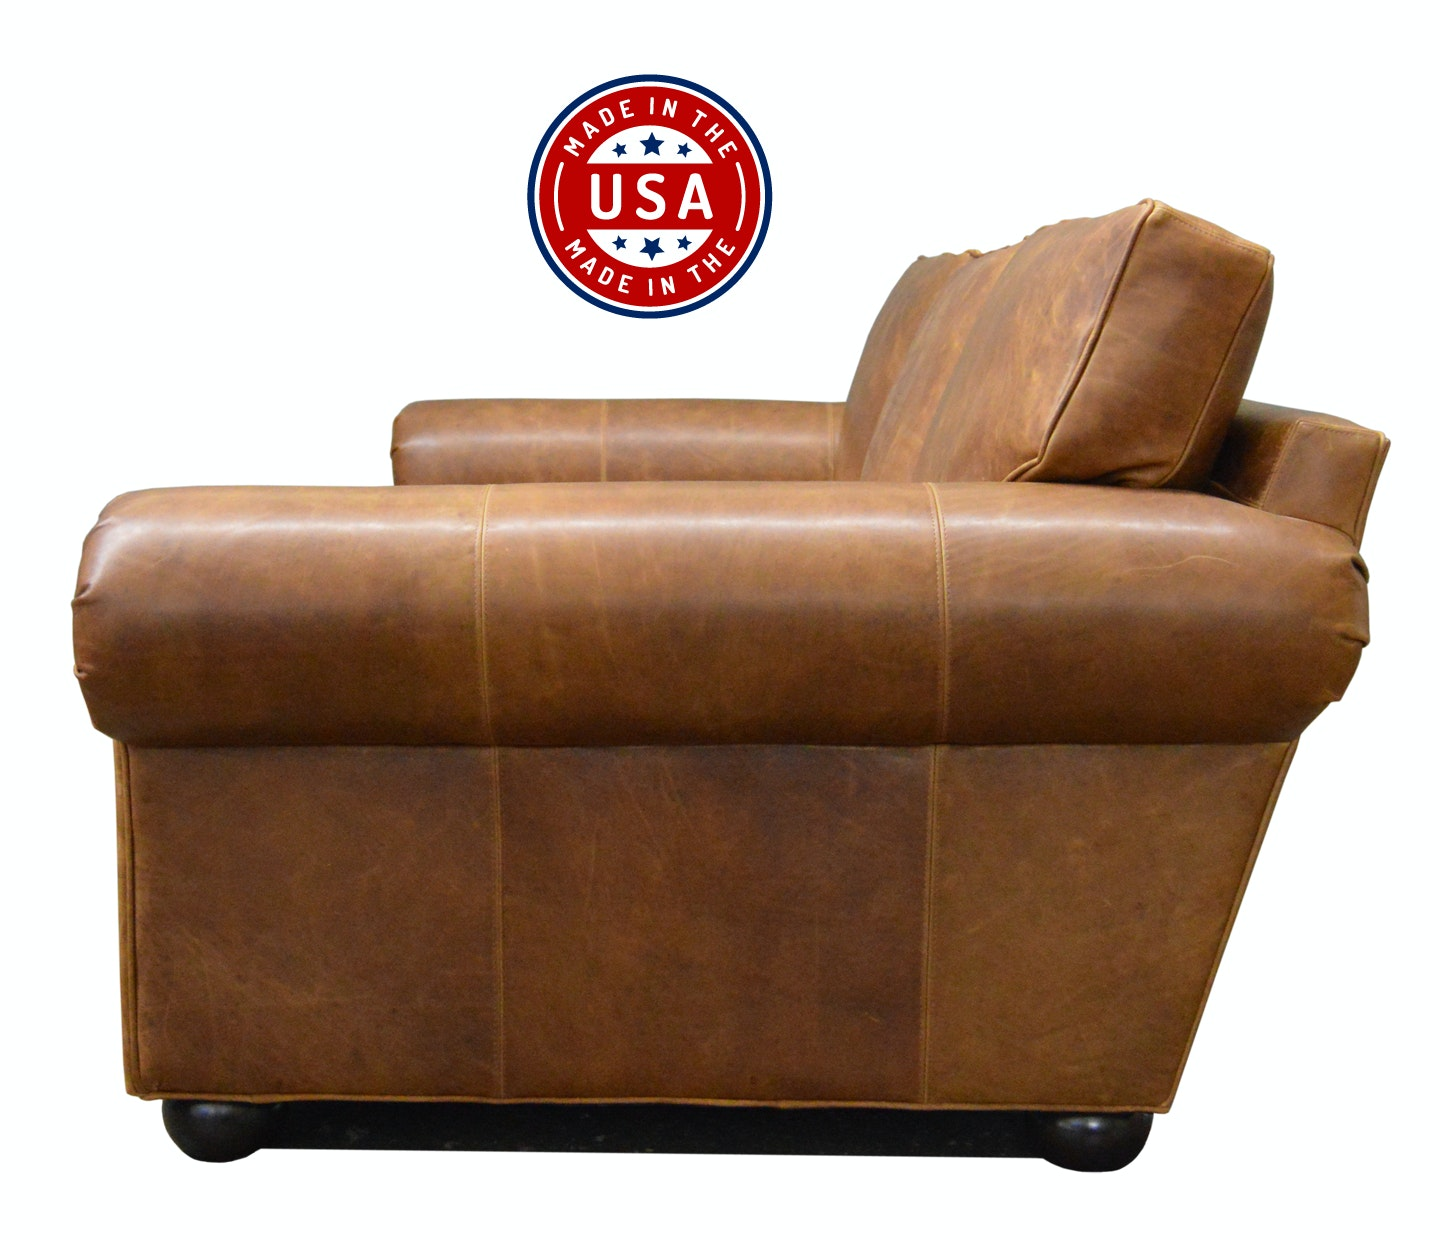 Langston Leather Sofa In Italian Brentwood Tan Leather   Side View